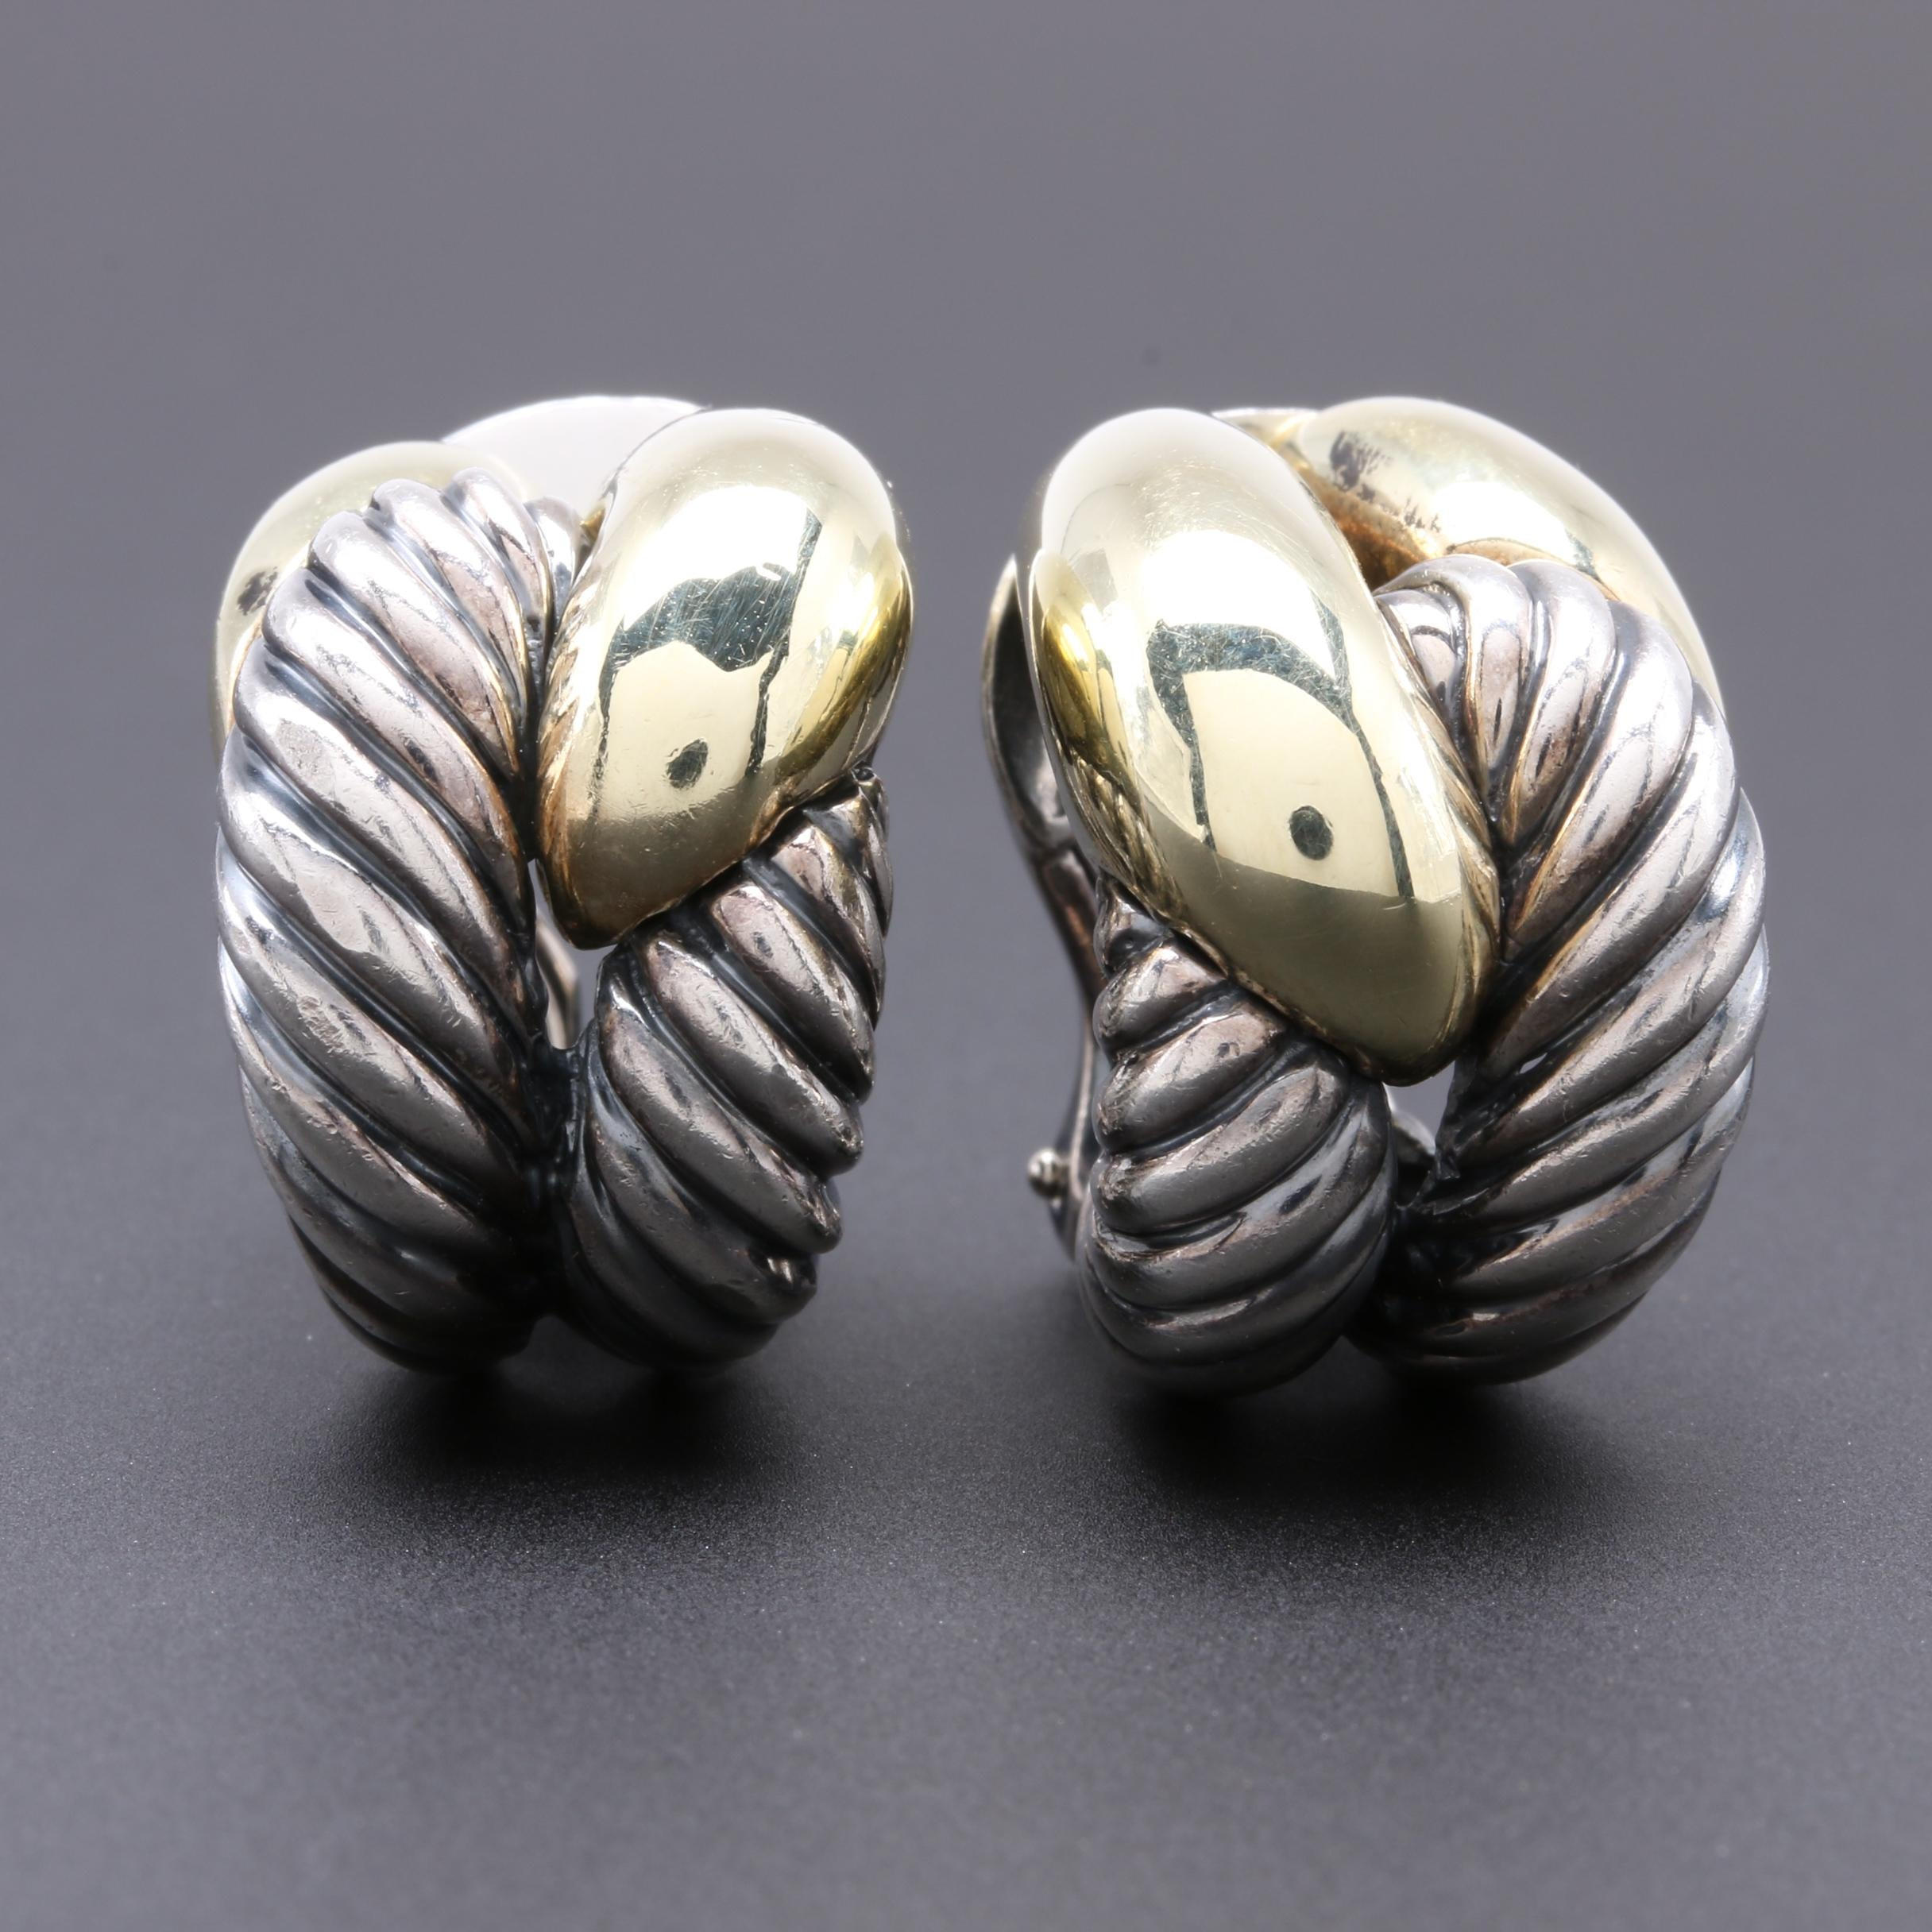 David Yurman Sterling Silver and 14K Yellow Gold Earrings